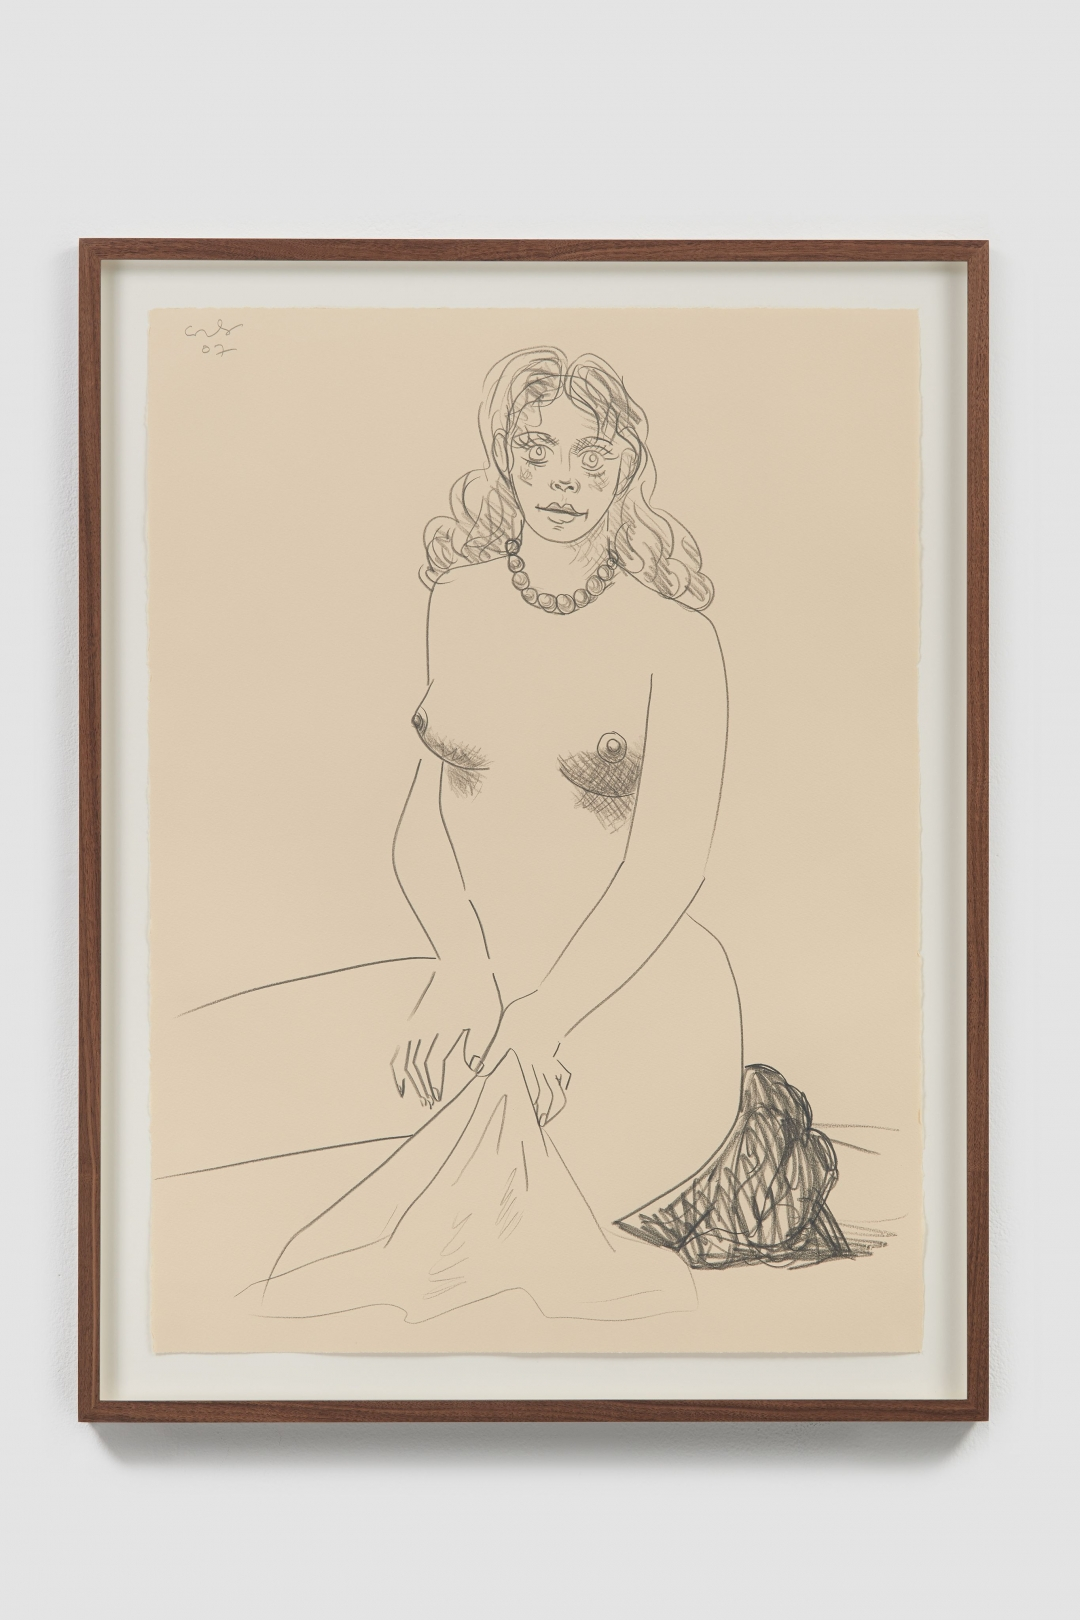 George Condo, <i>Nude with Towel</i>, 2007, Pencil on paper, 12 x 22 1/2 in. (31 x 57 cm)